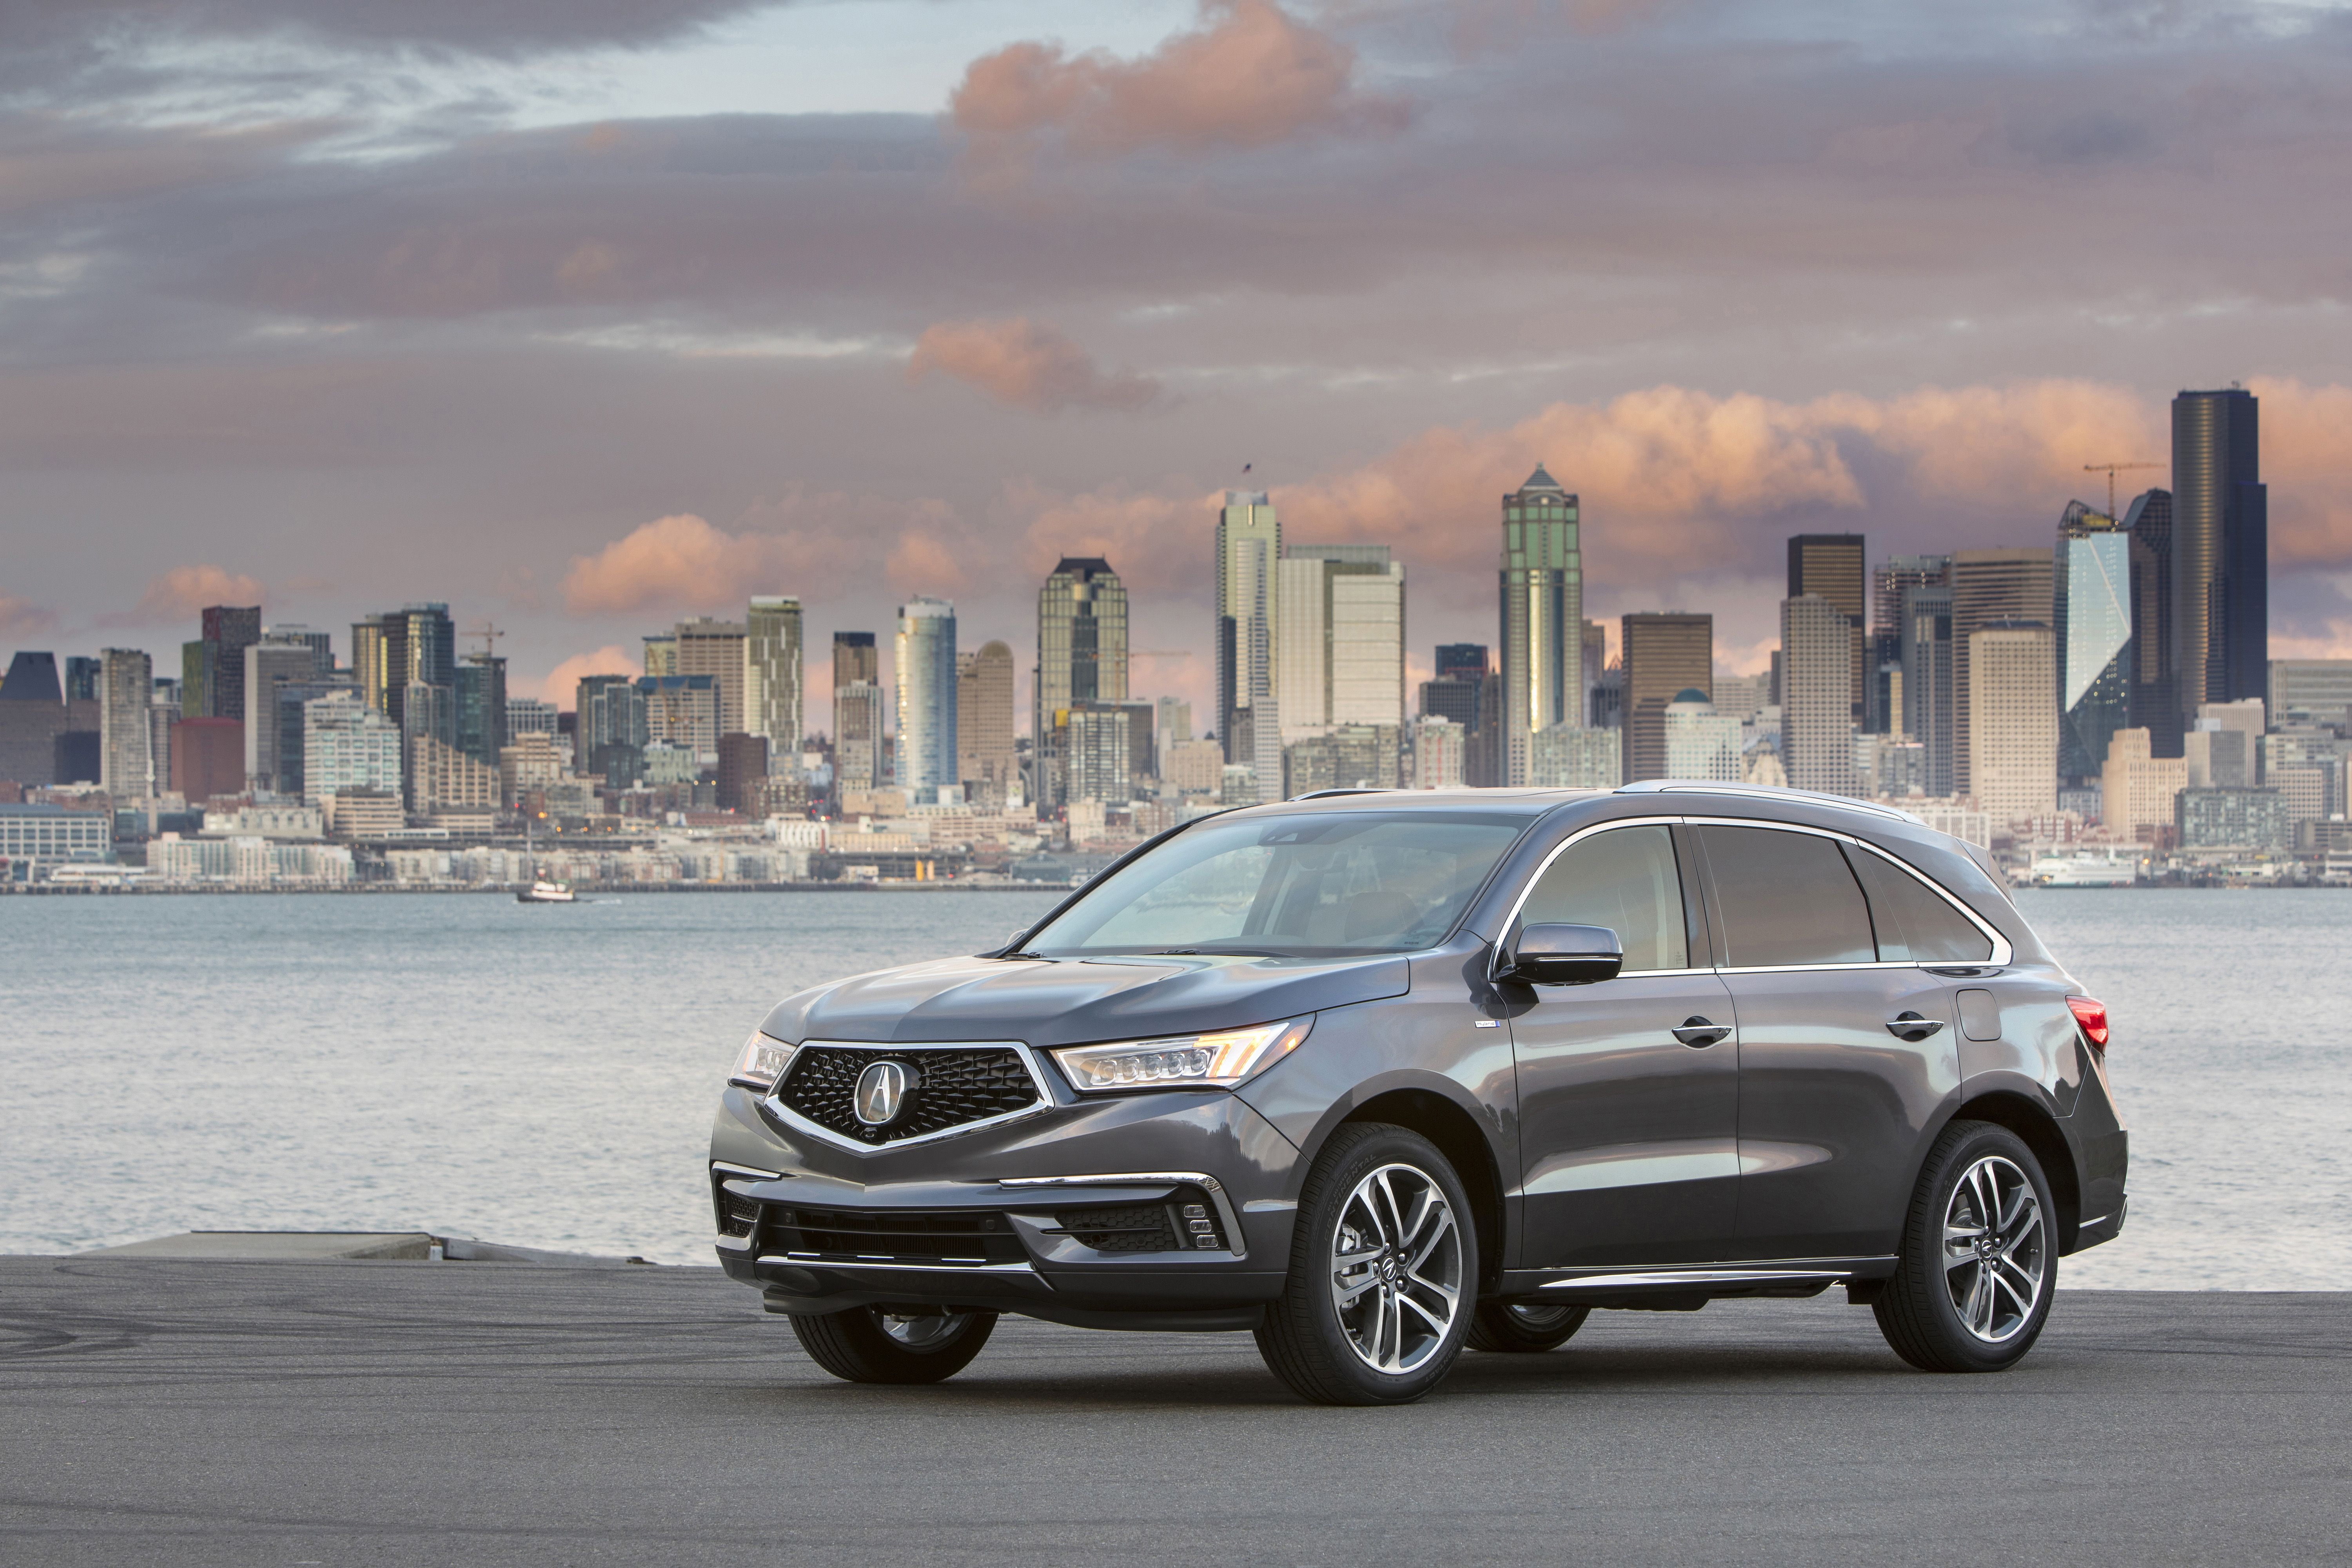 Acura Rlx And Mdx Named Among 25 Safest Luxury Cars Of 2019 Cheap Sports Cars Luxury Cars Sports Cars Luxury